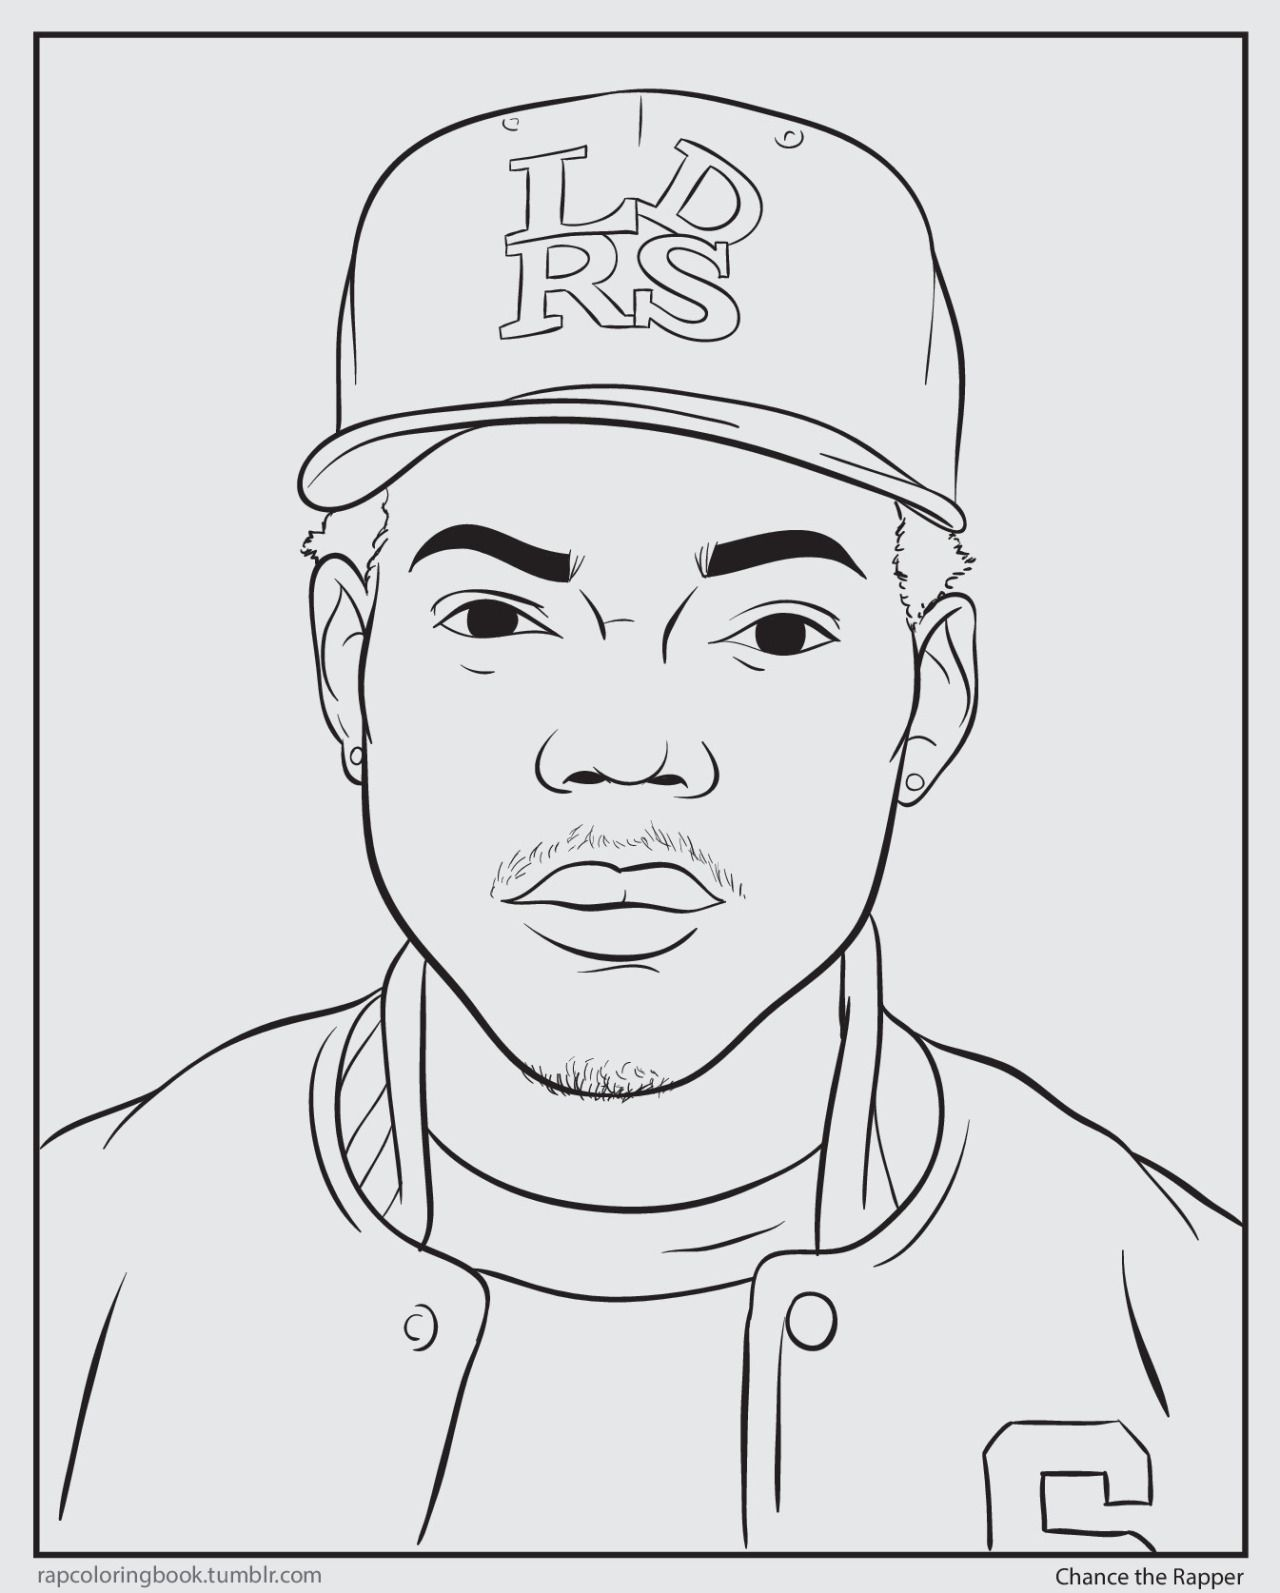 Bun B S Jumbo Coloring And Rap Activity Tumblr Click Here To Download The Chance The Rapper Coloring Book Chance Coloring Books Coloring Book Download